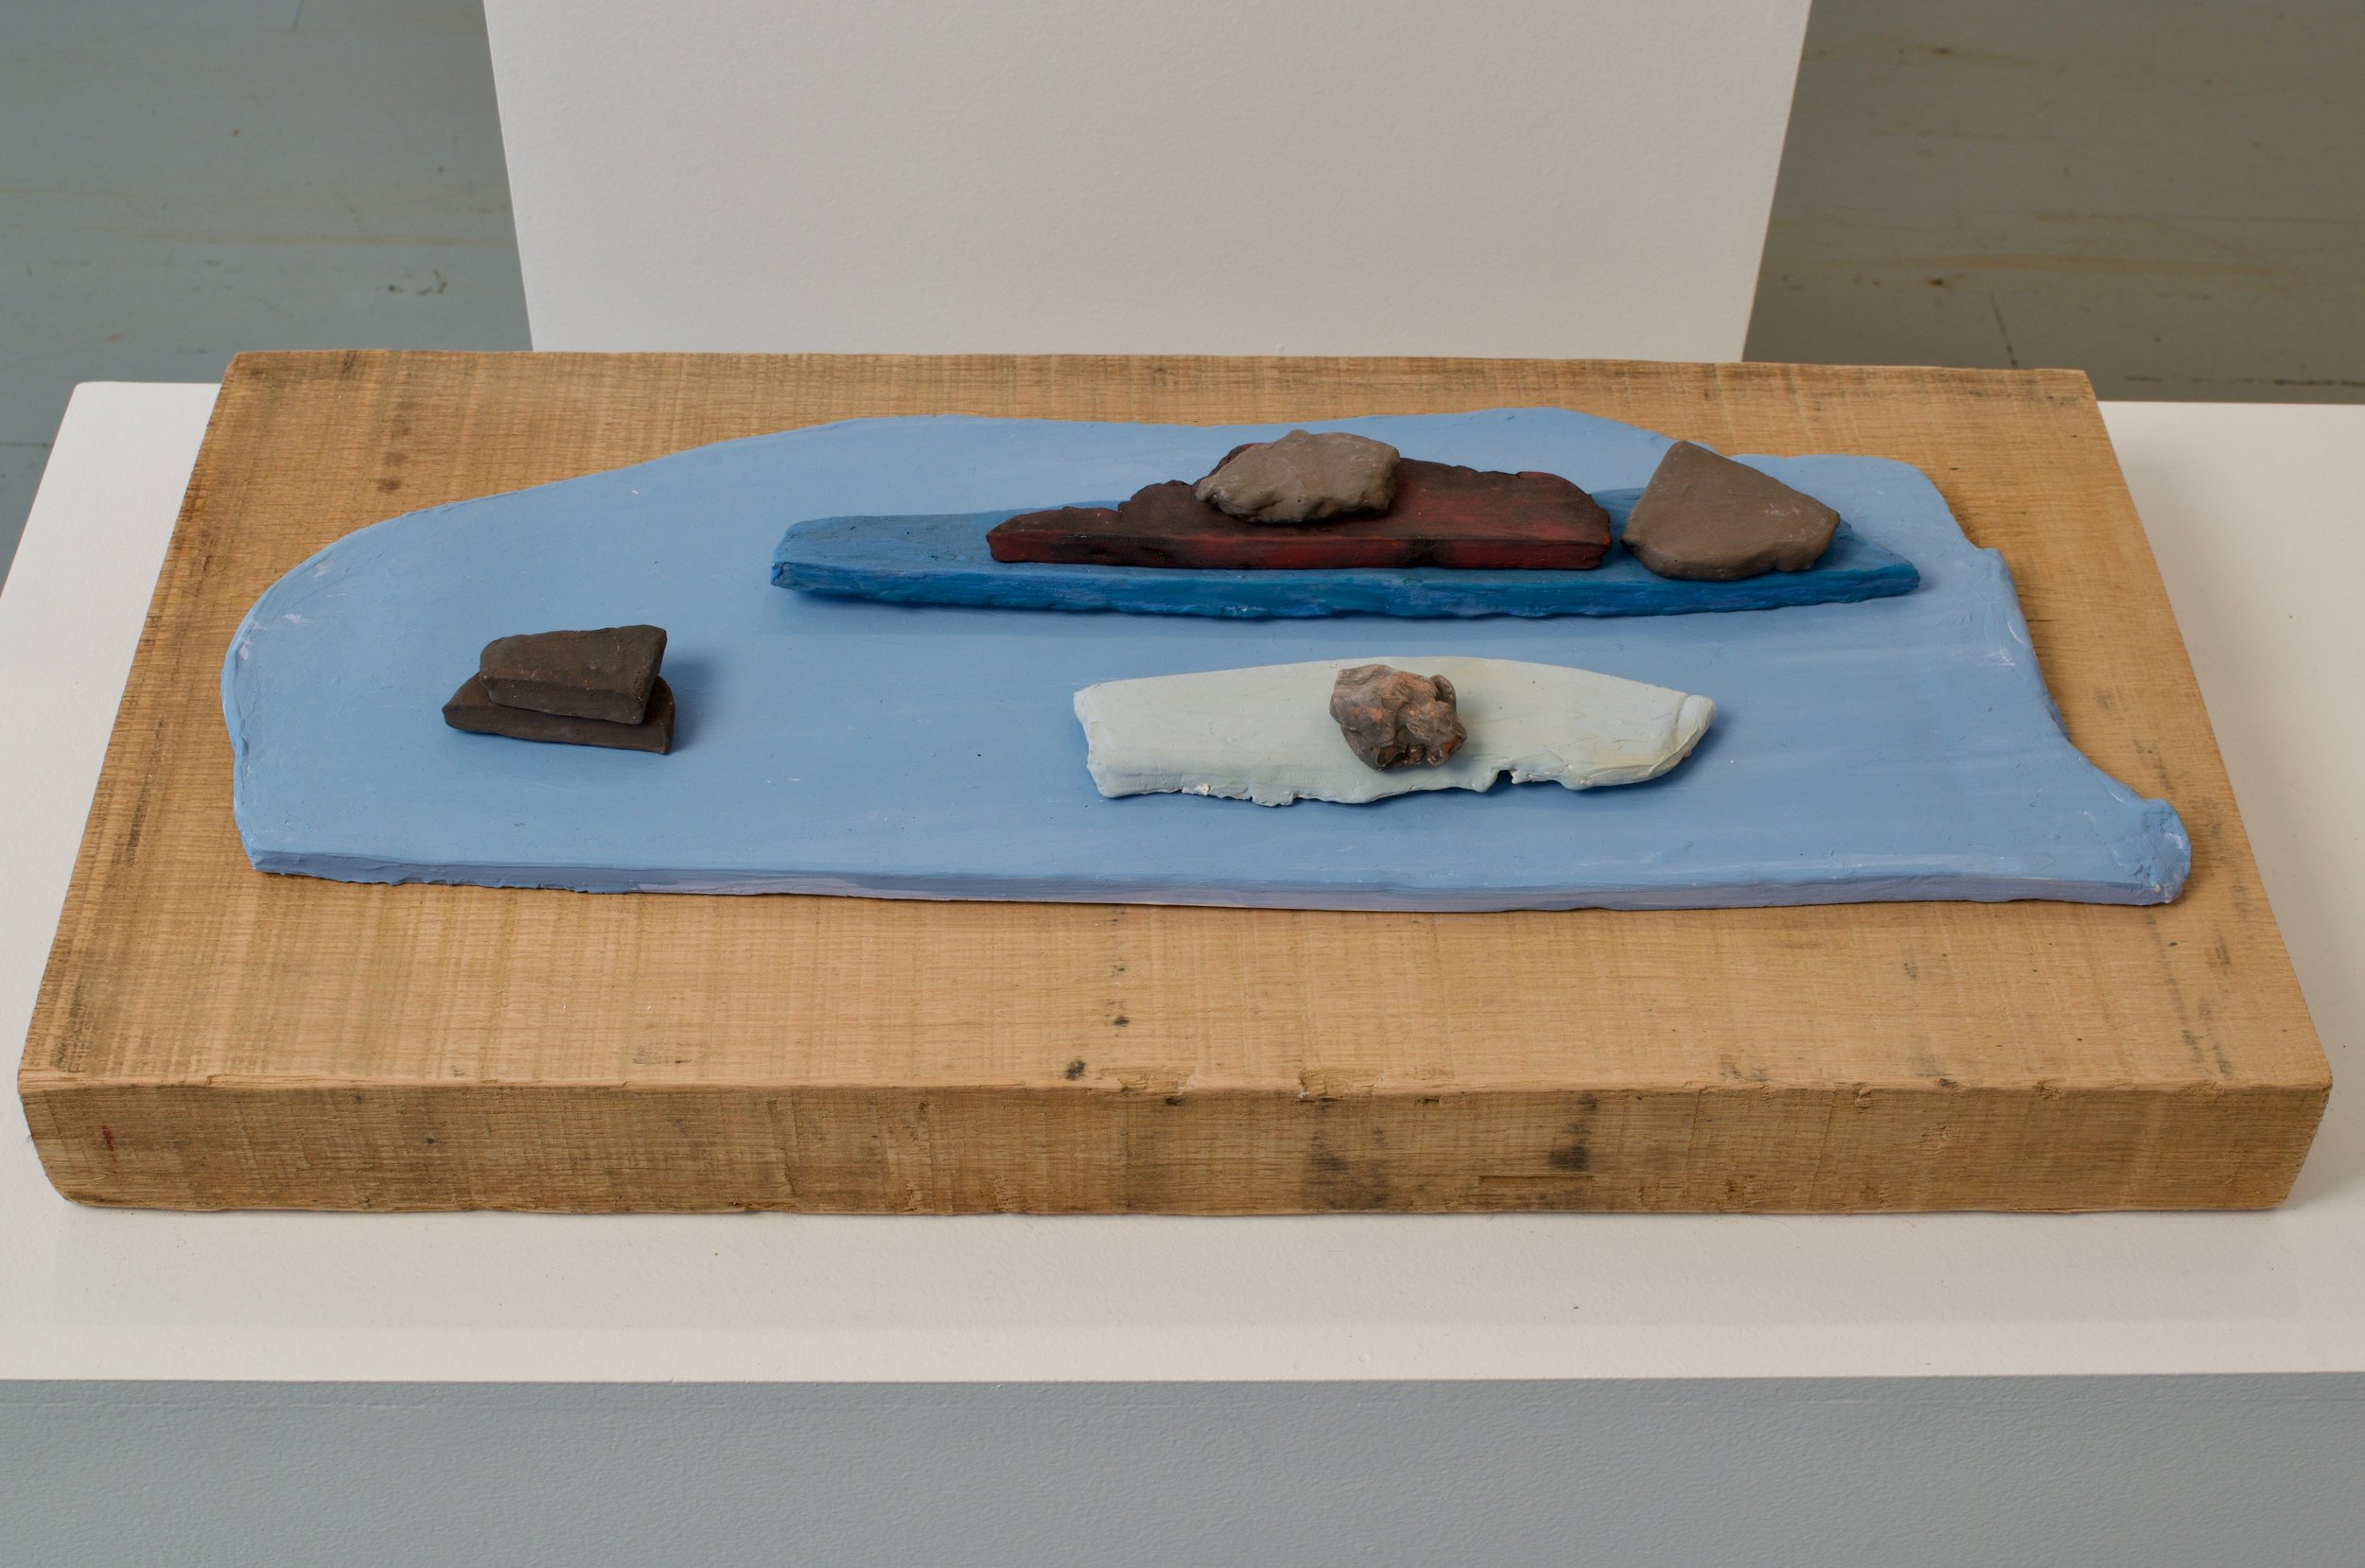 Katia Ramsey-Read, Waterscape, 2019. Bisqued Stoneware on Wood, 3 ¼ x 12 x 24 inches